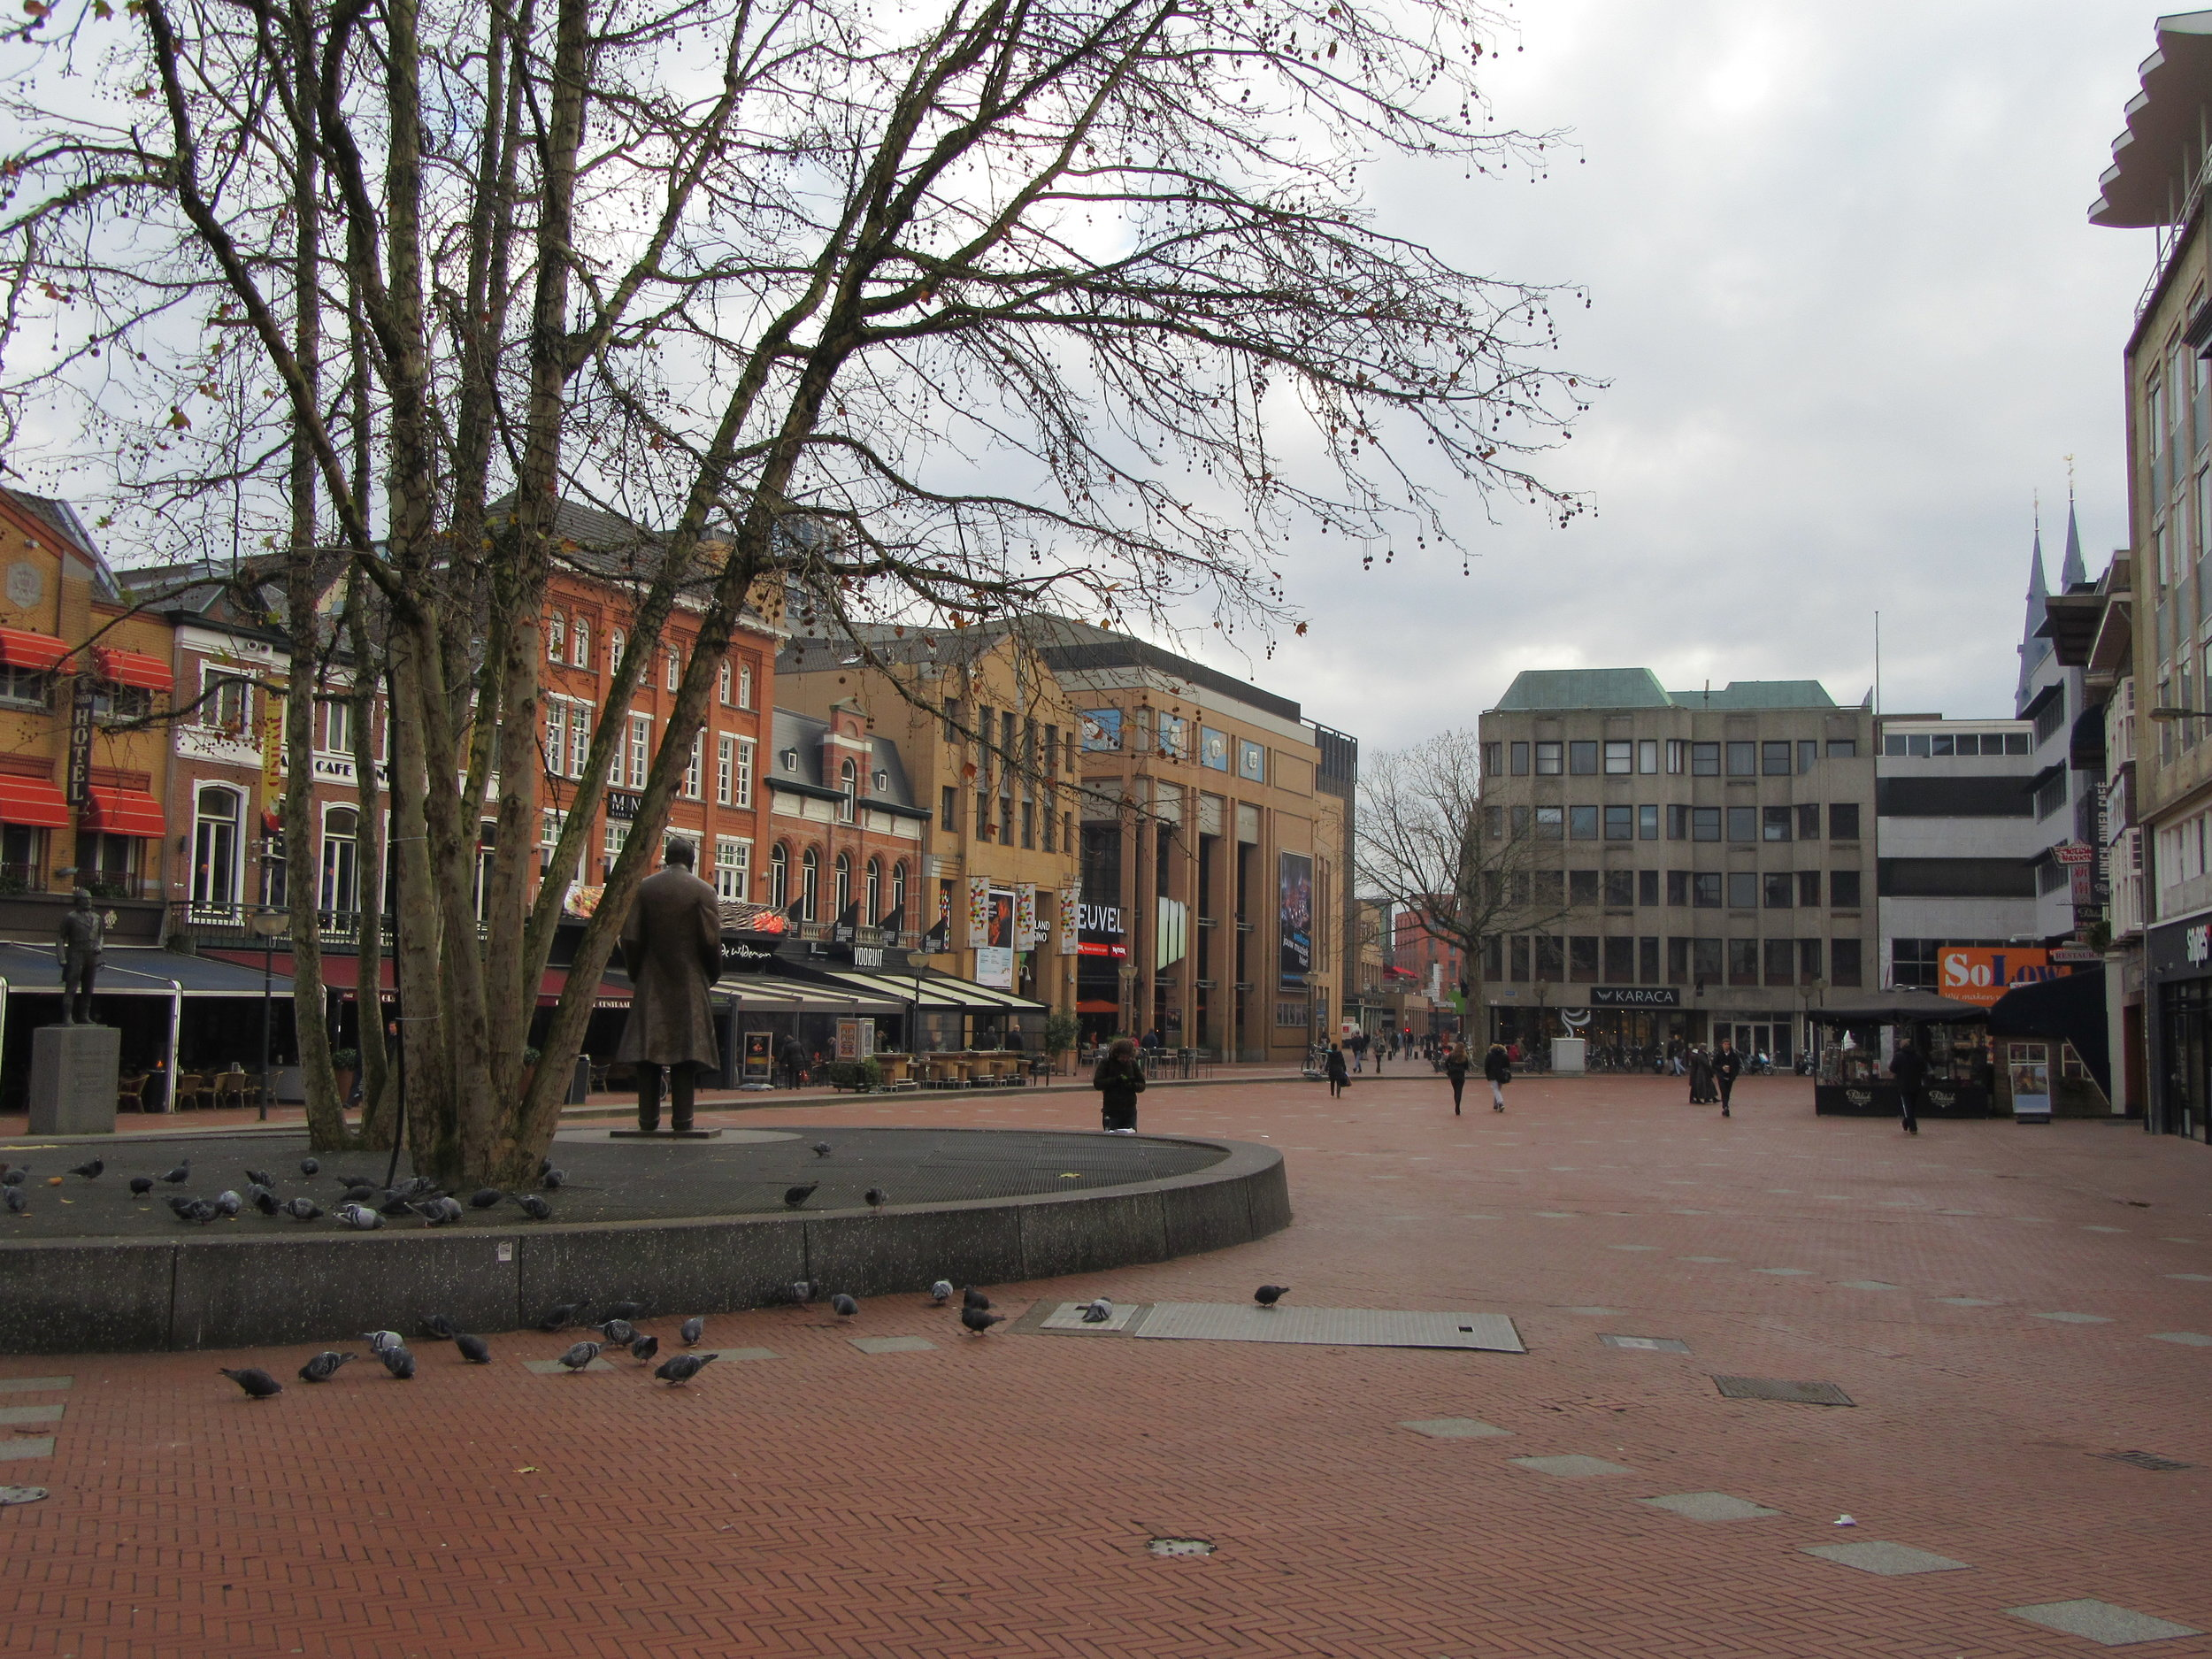 The statue of of one of Eindhoven's favourite sons Frits Philips overlooks cental square, the Markt.